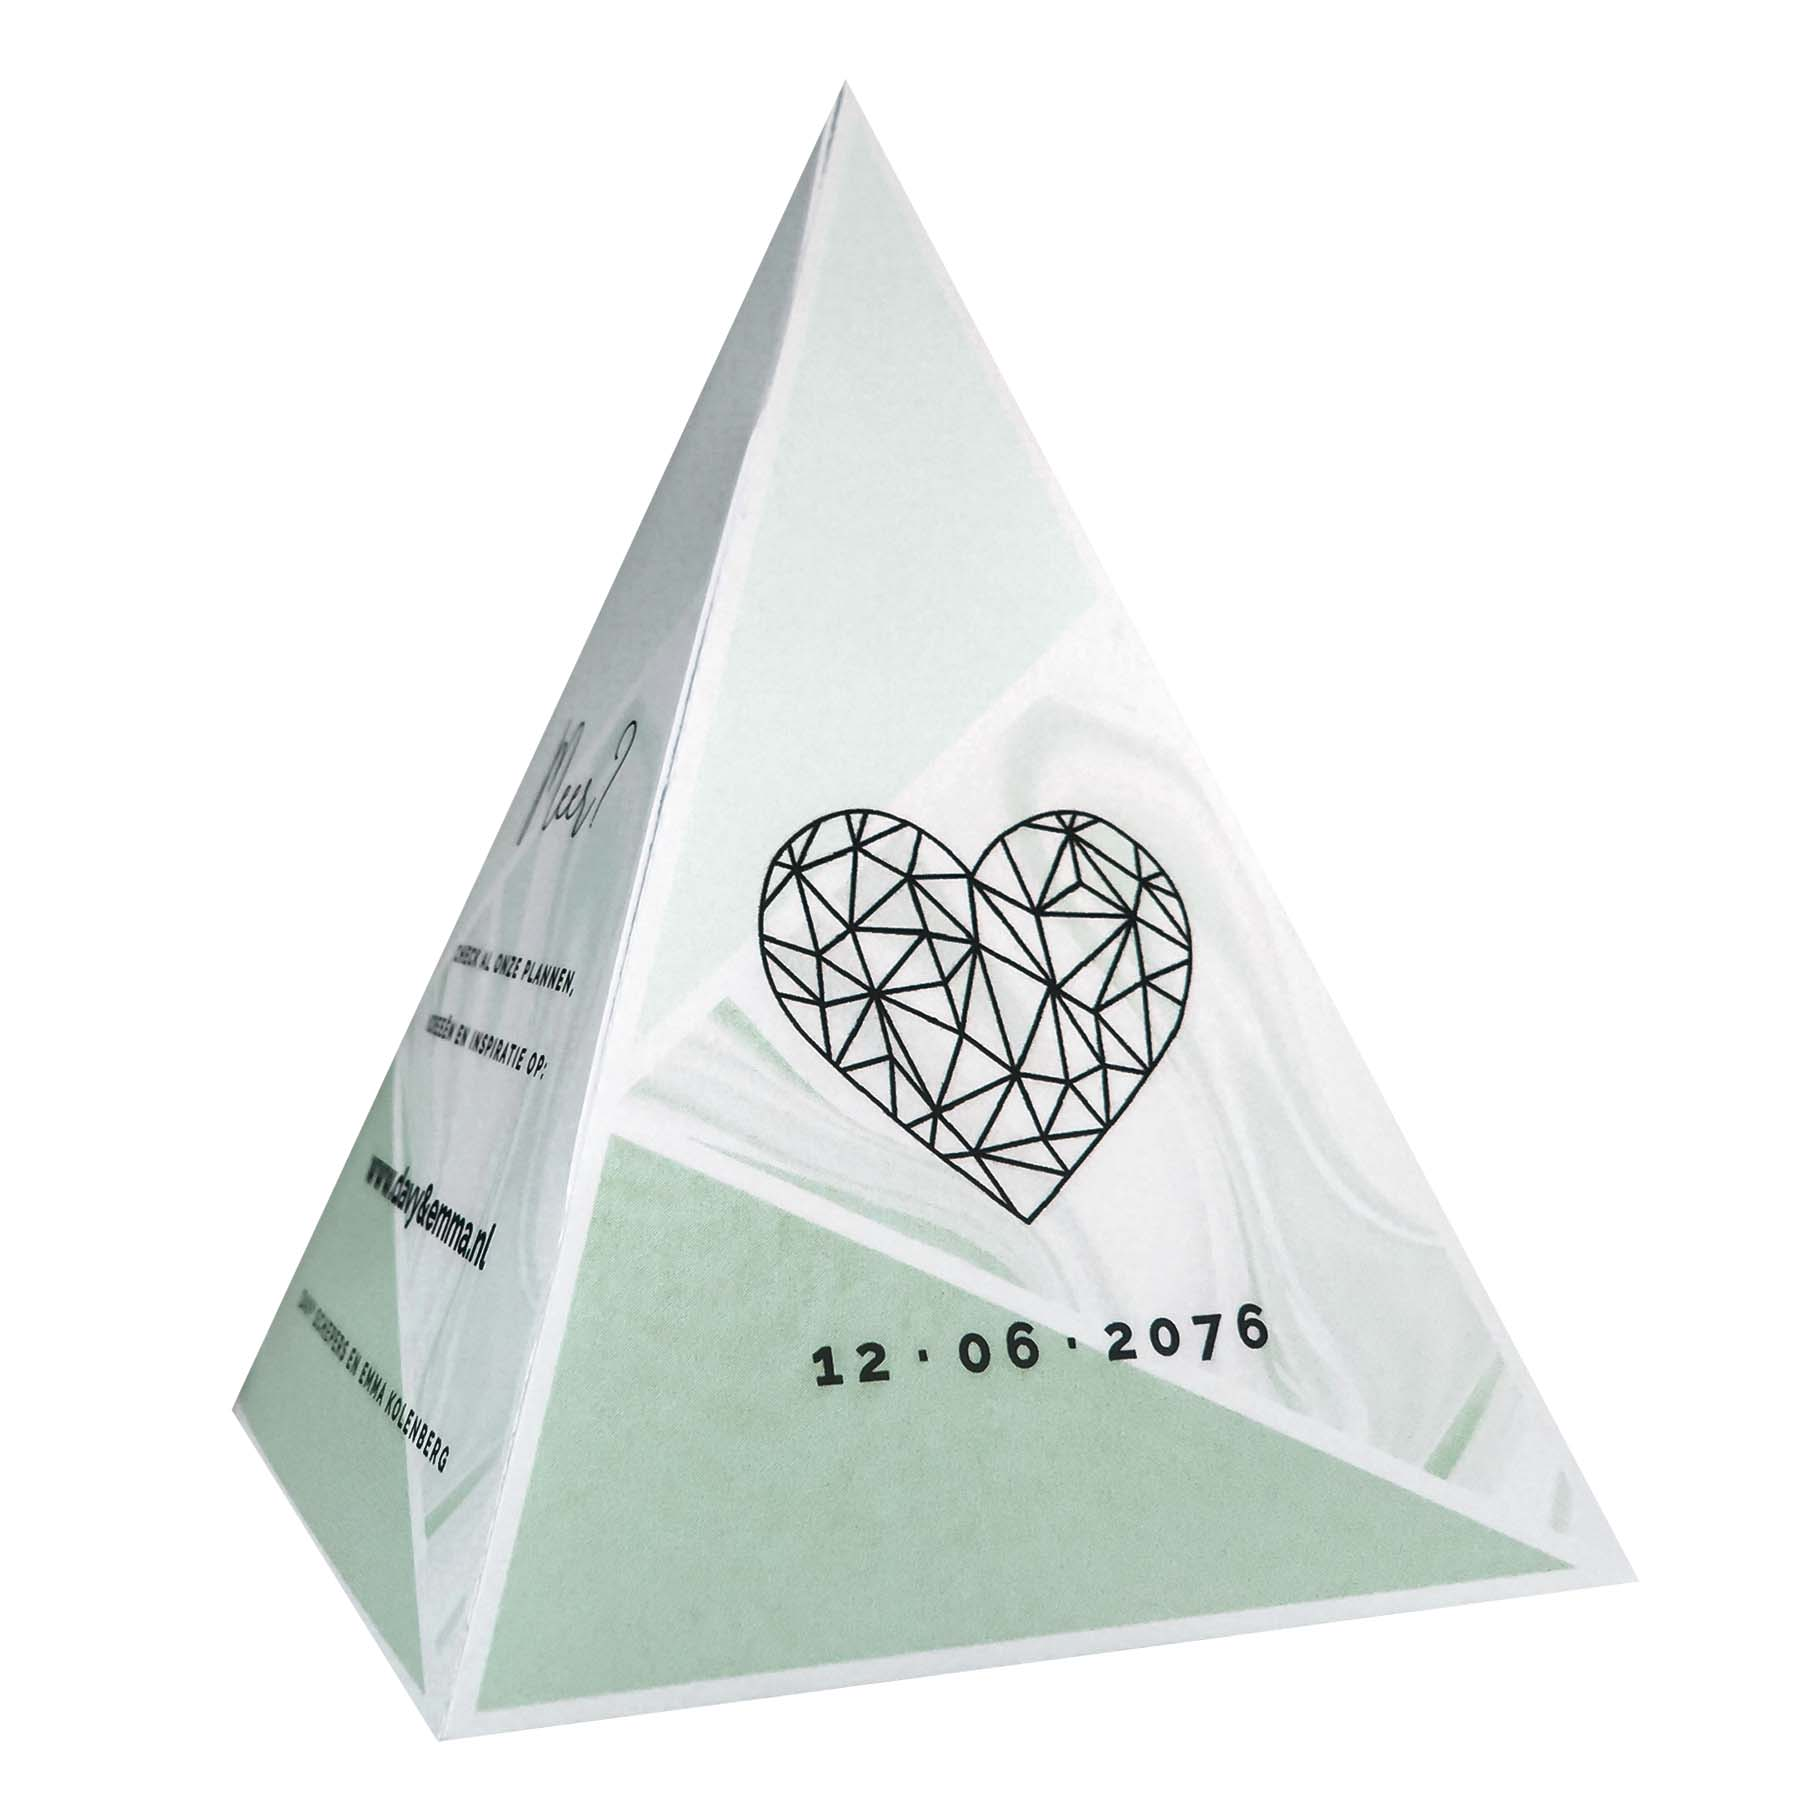 Tipi save-the-date kaart mint marmer